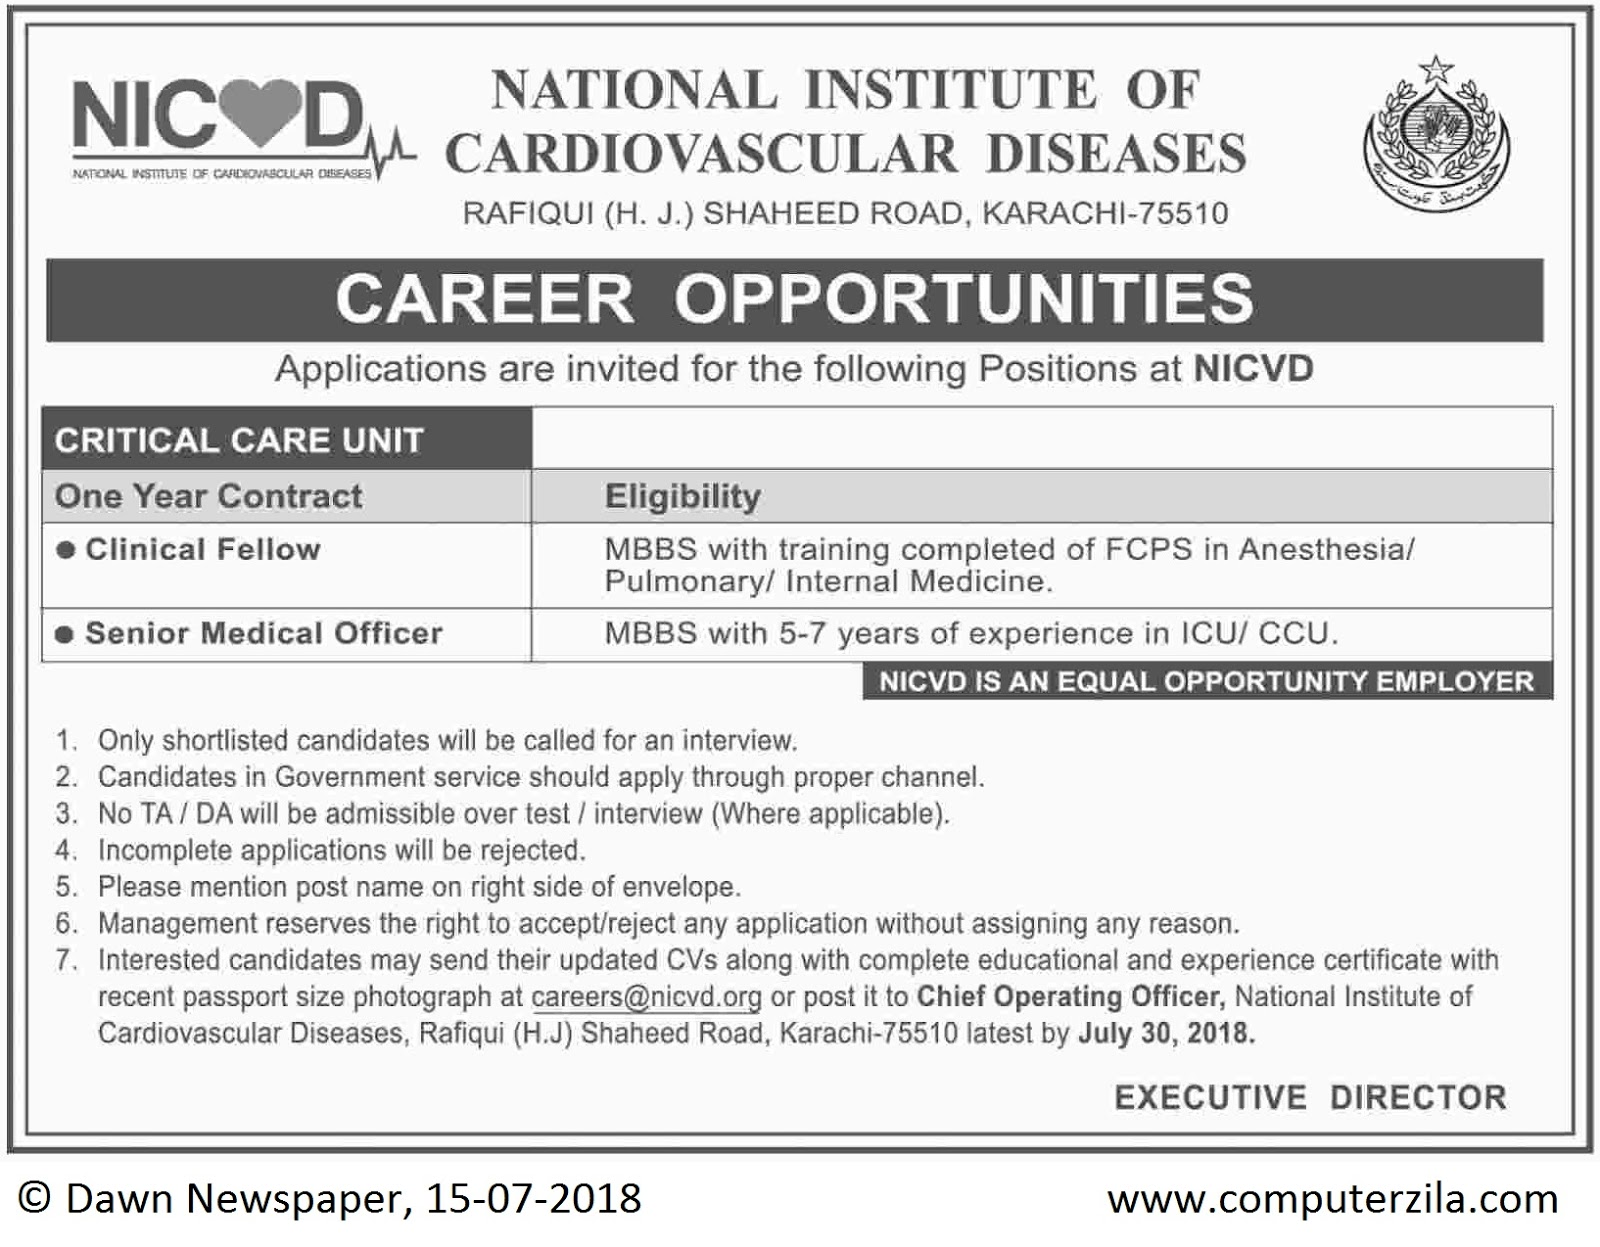 Career Opportunities at National Institute of Cardiovascular Diseases